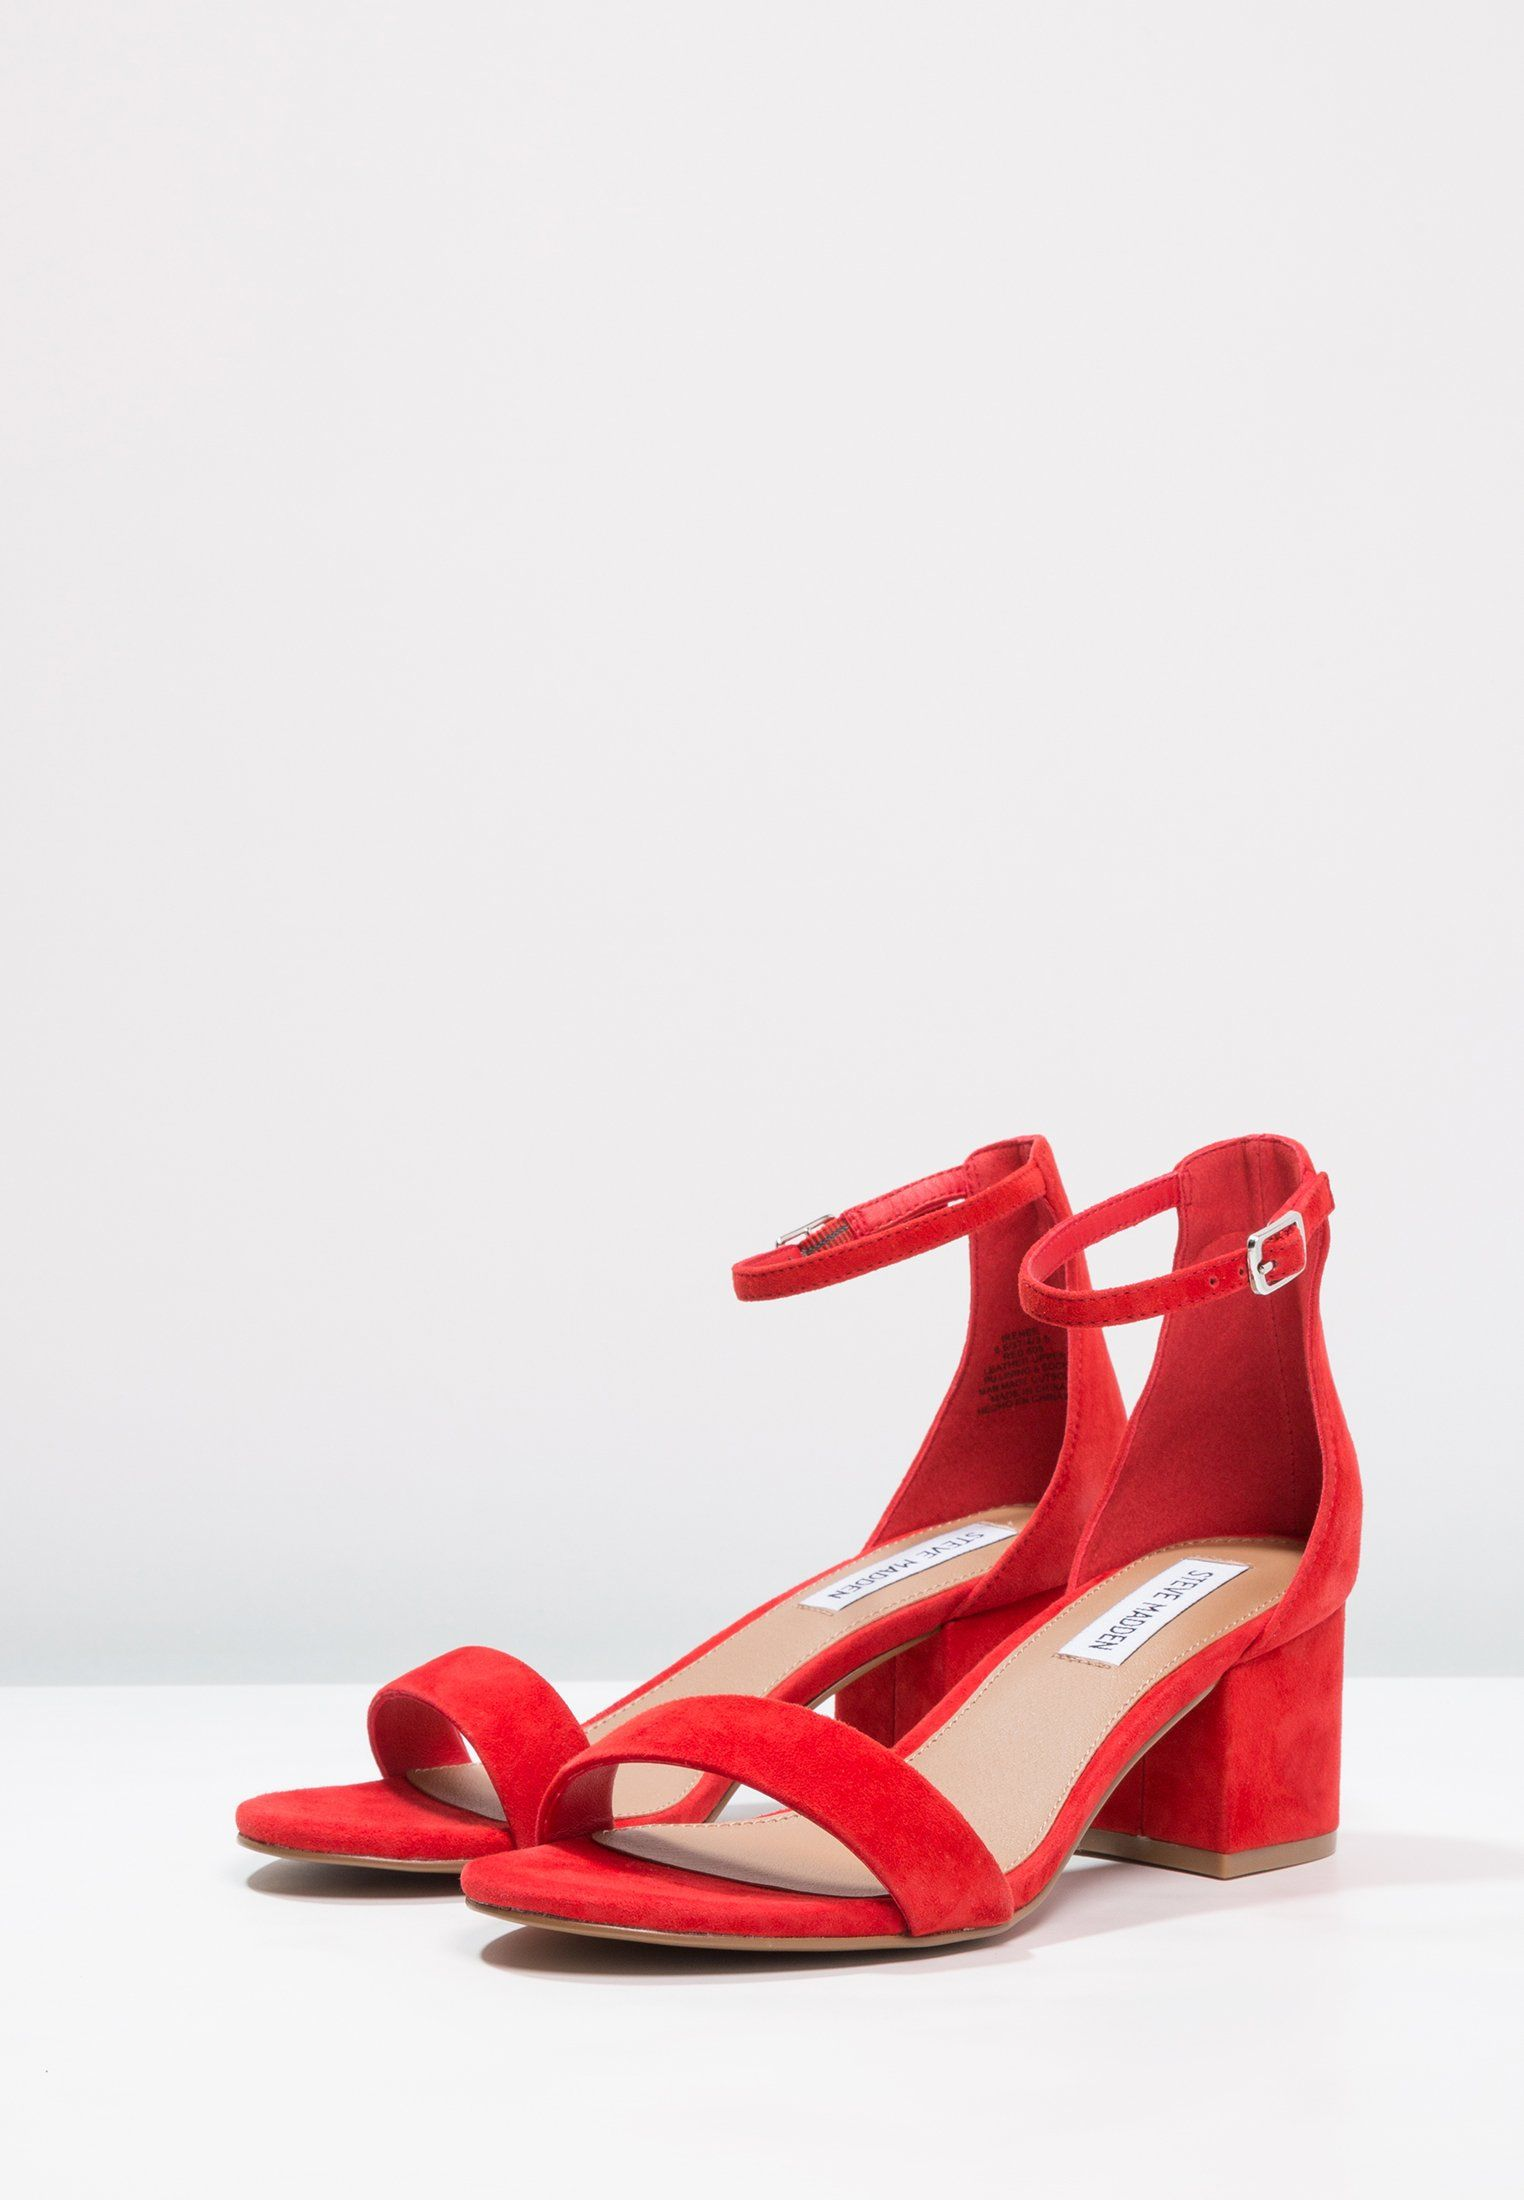 Www Zalando Nl Retourneren Irenee Sandalen Red Zalando Nl Objects Of Desire